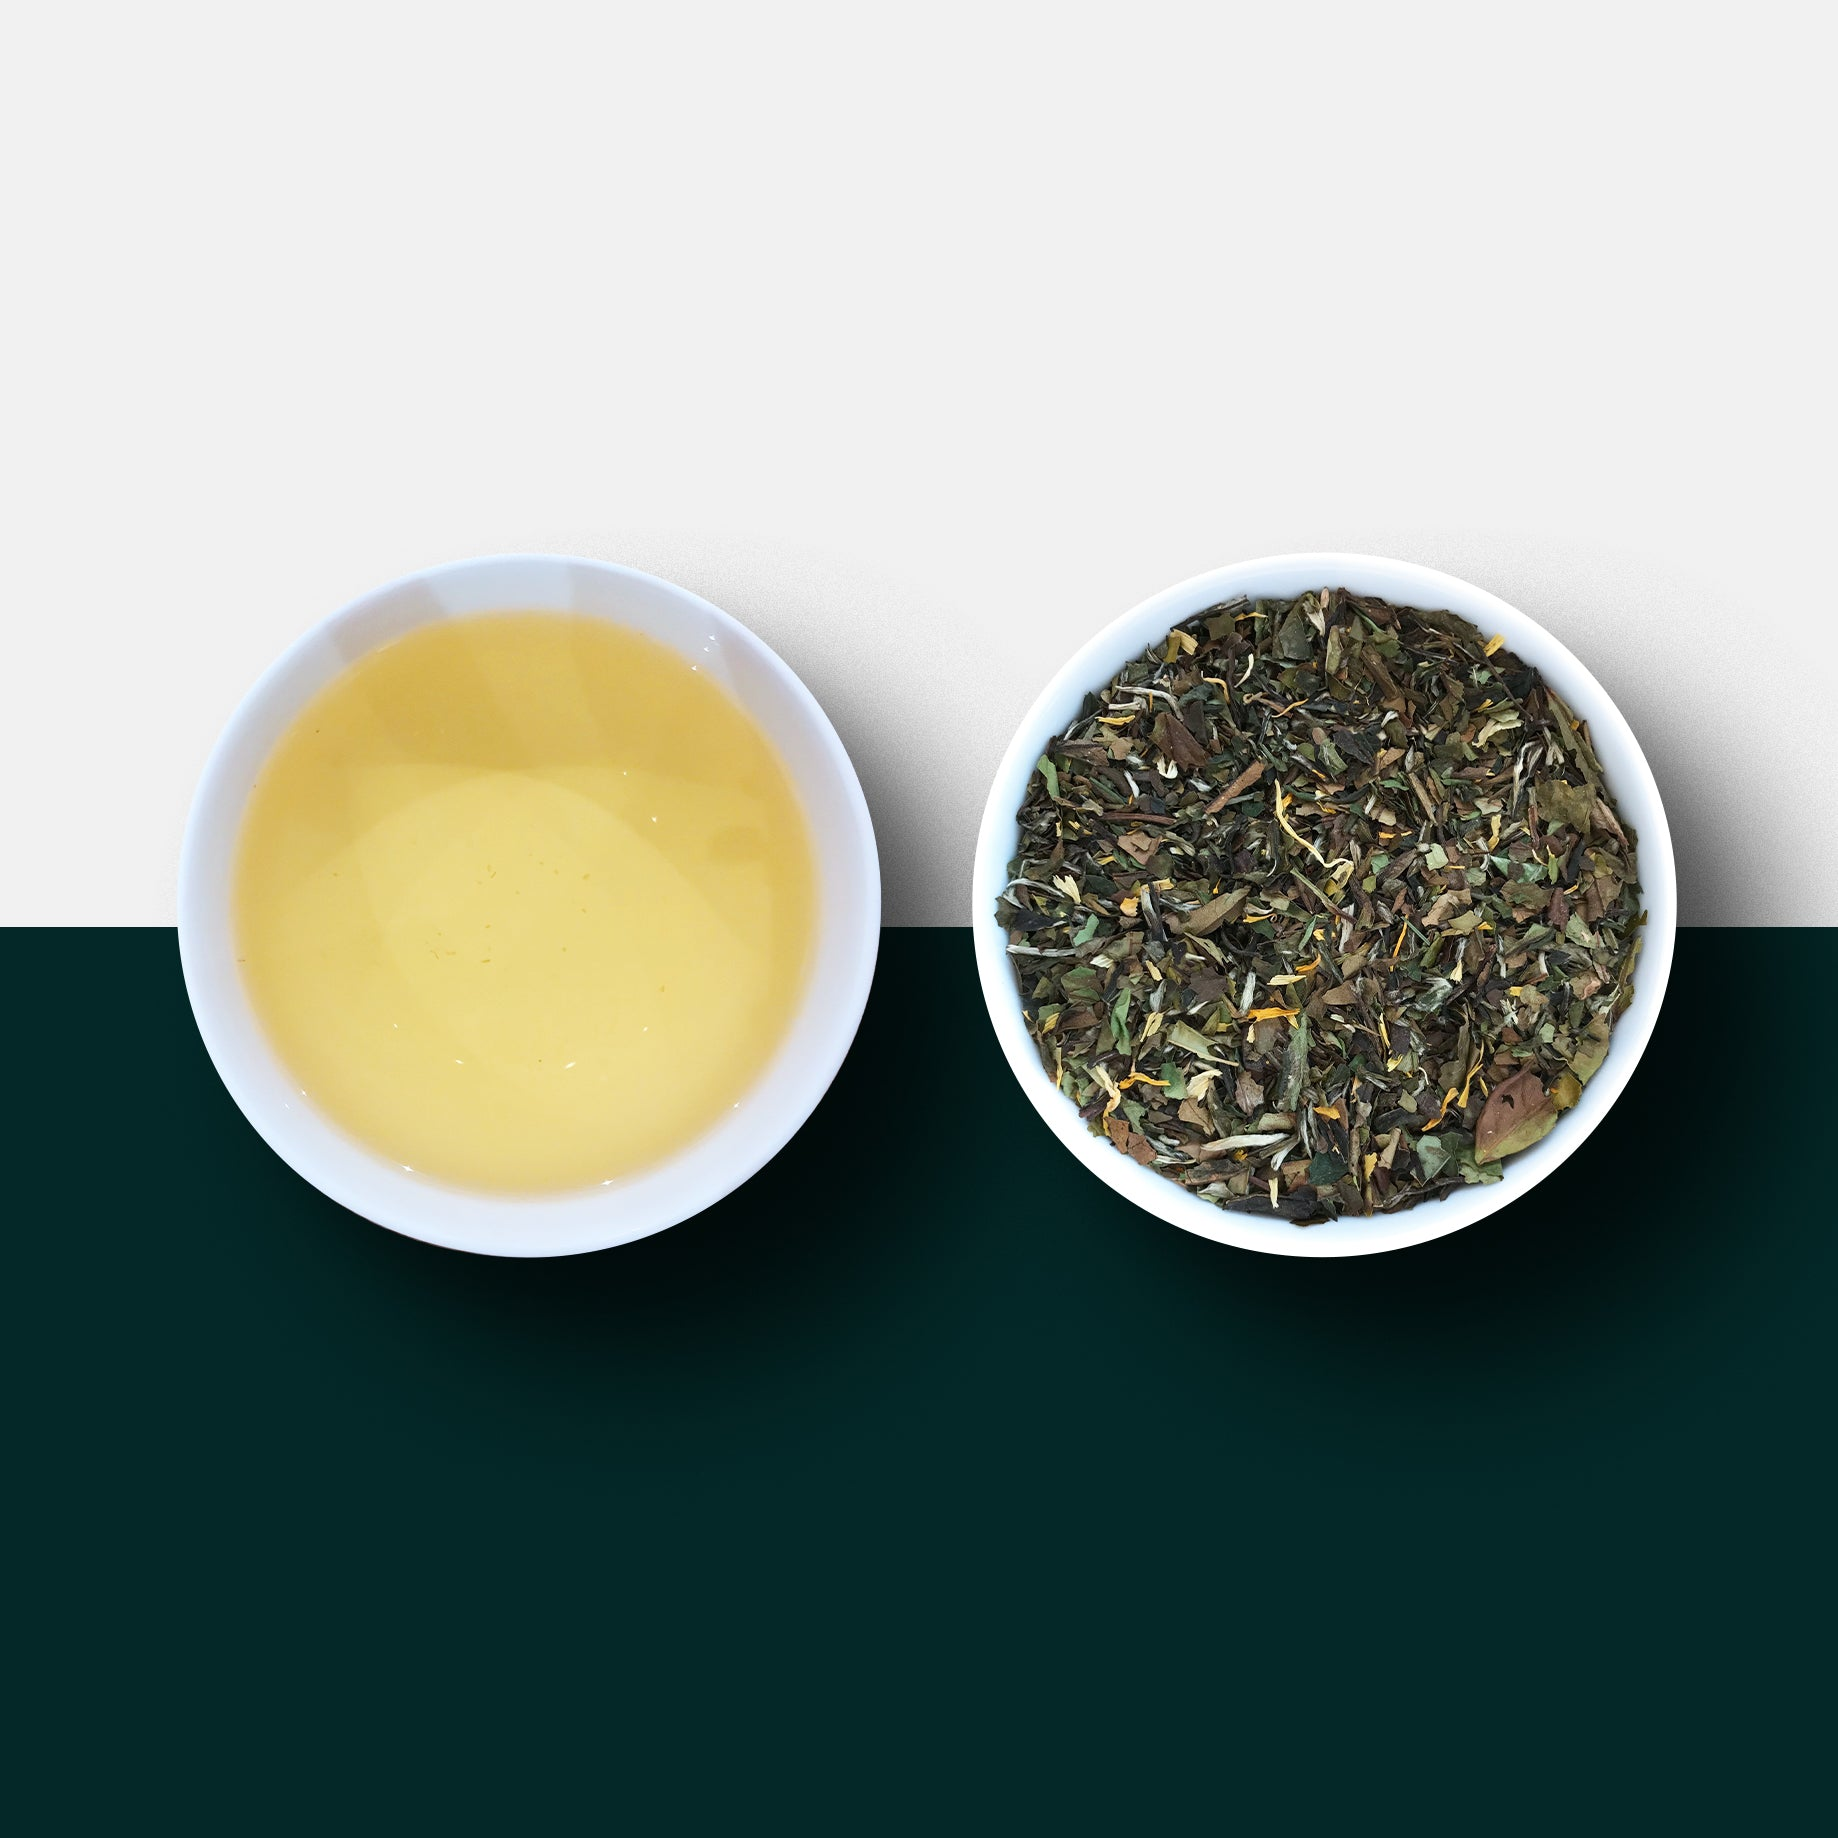 White tea and mango - mango tea - loose leaf tea and liquor